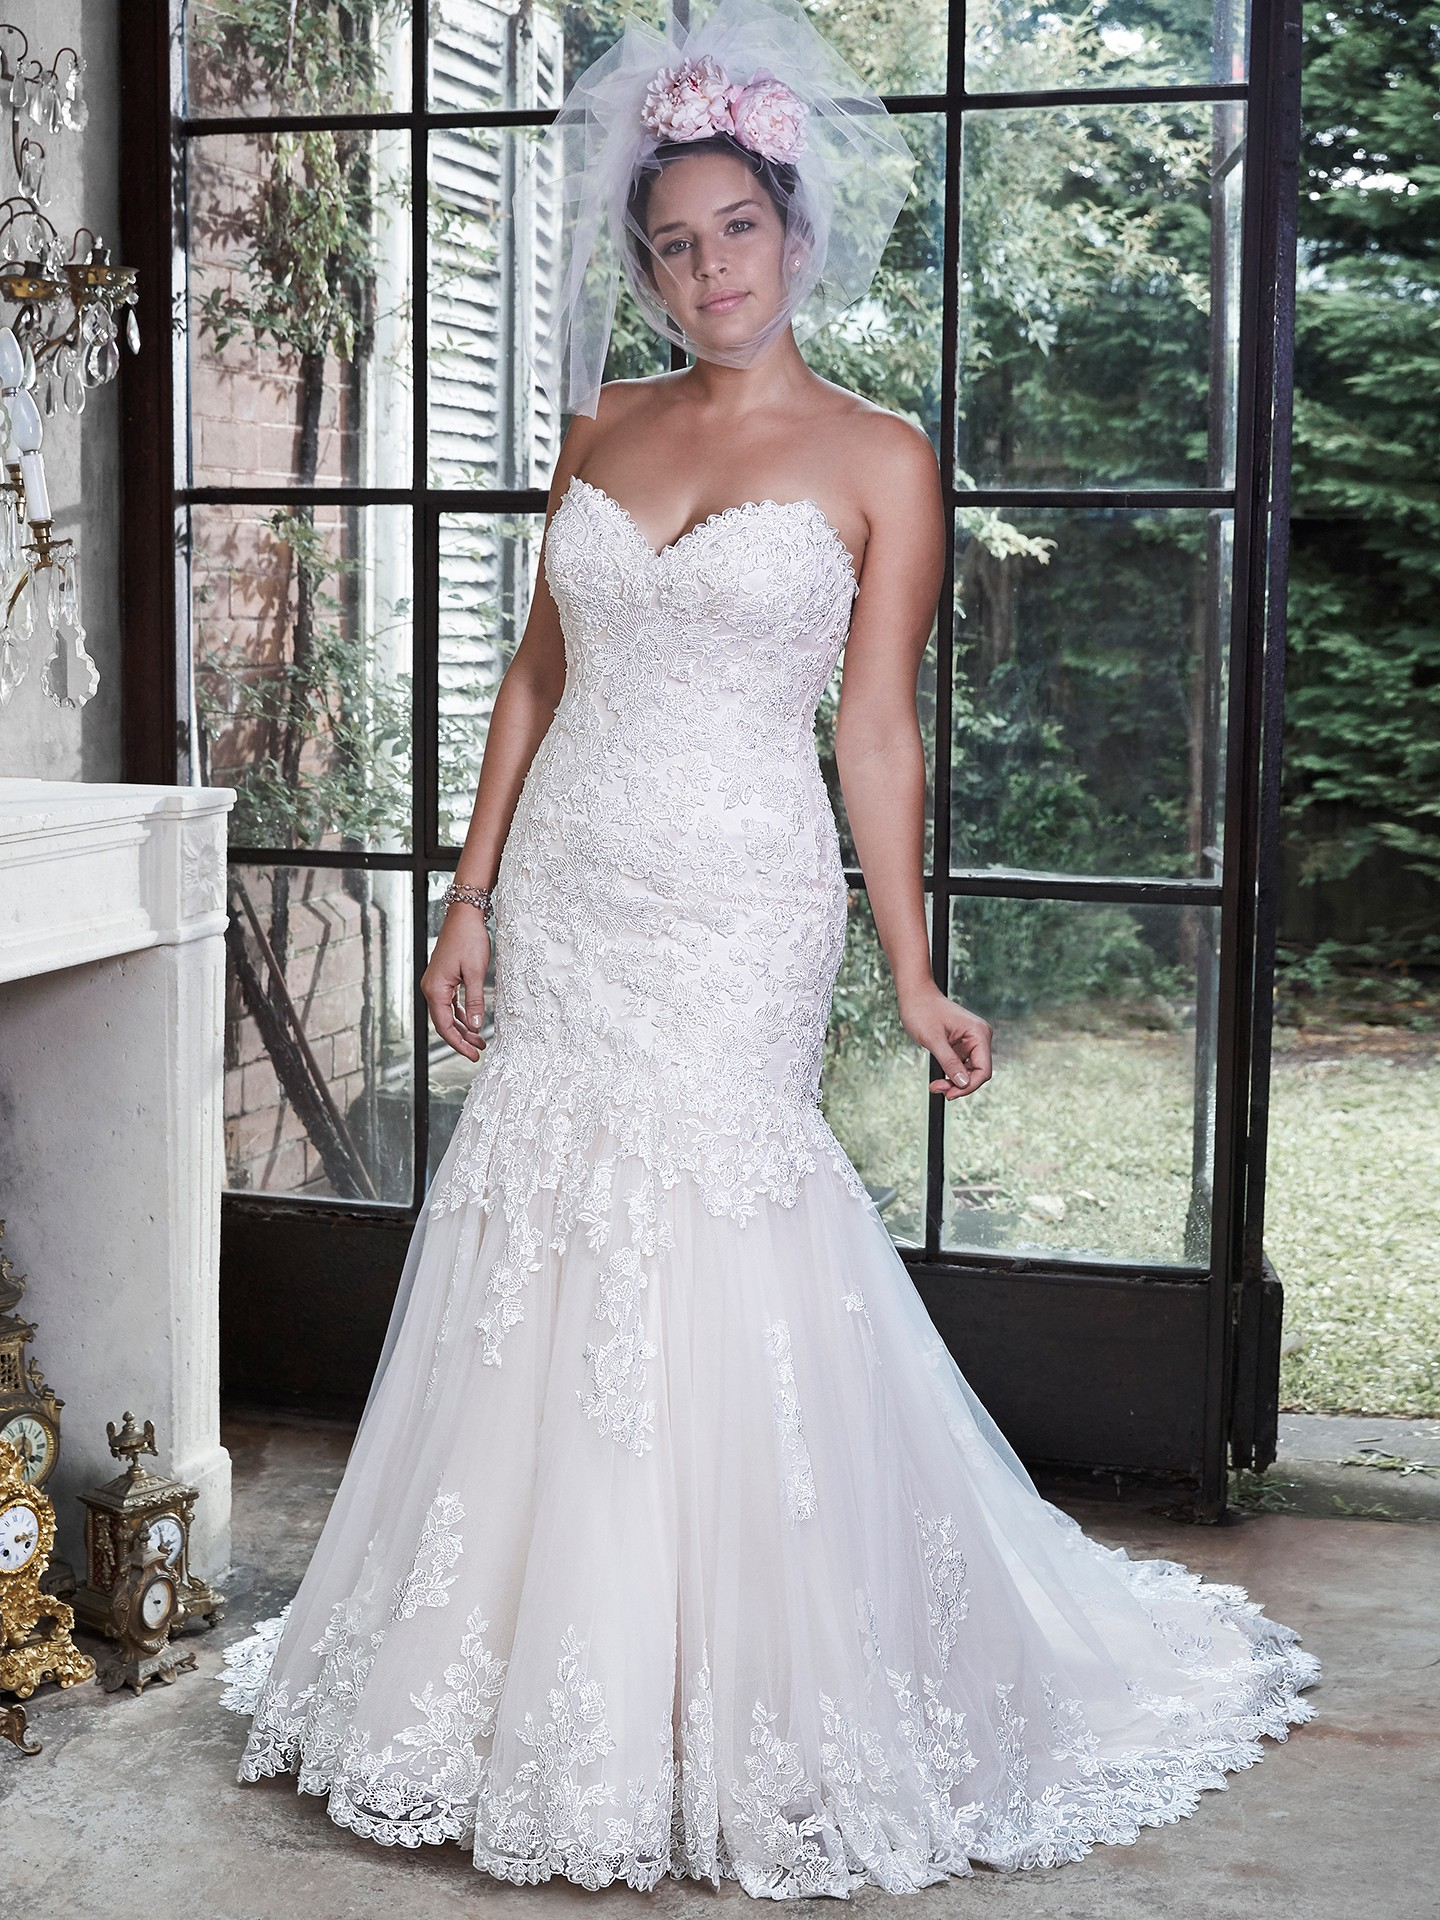 Marianne blush wedding dress. Beautifully embellished lace adorns this dramatic fit and flare wedding gown, with a sweetheart neckline and subtle sparkle. Blush wedding dresses by Maggie Sottero.